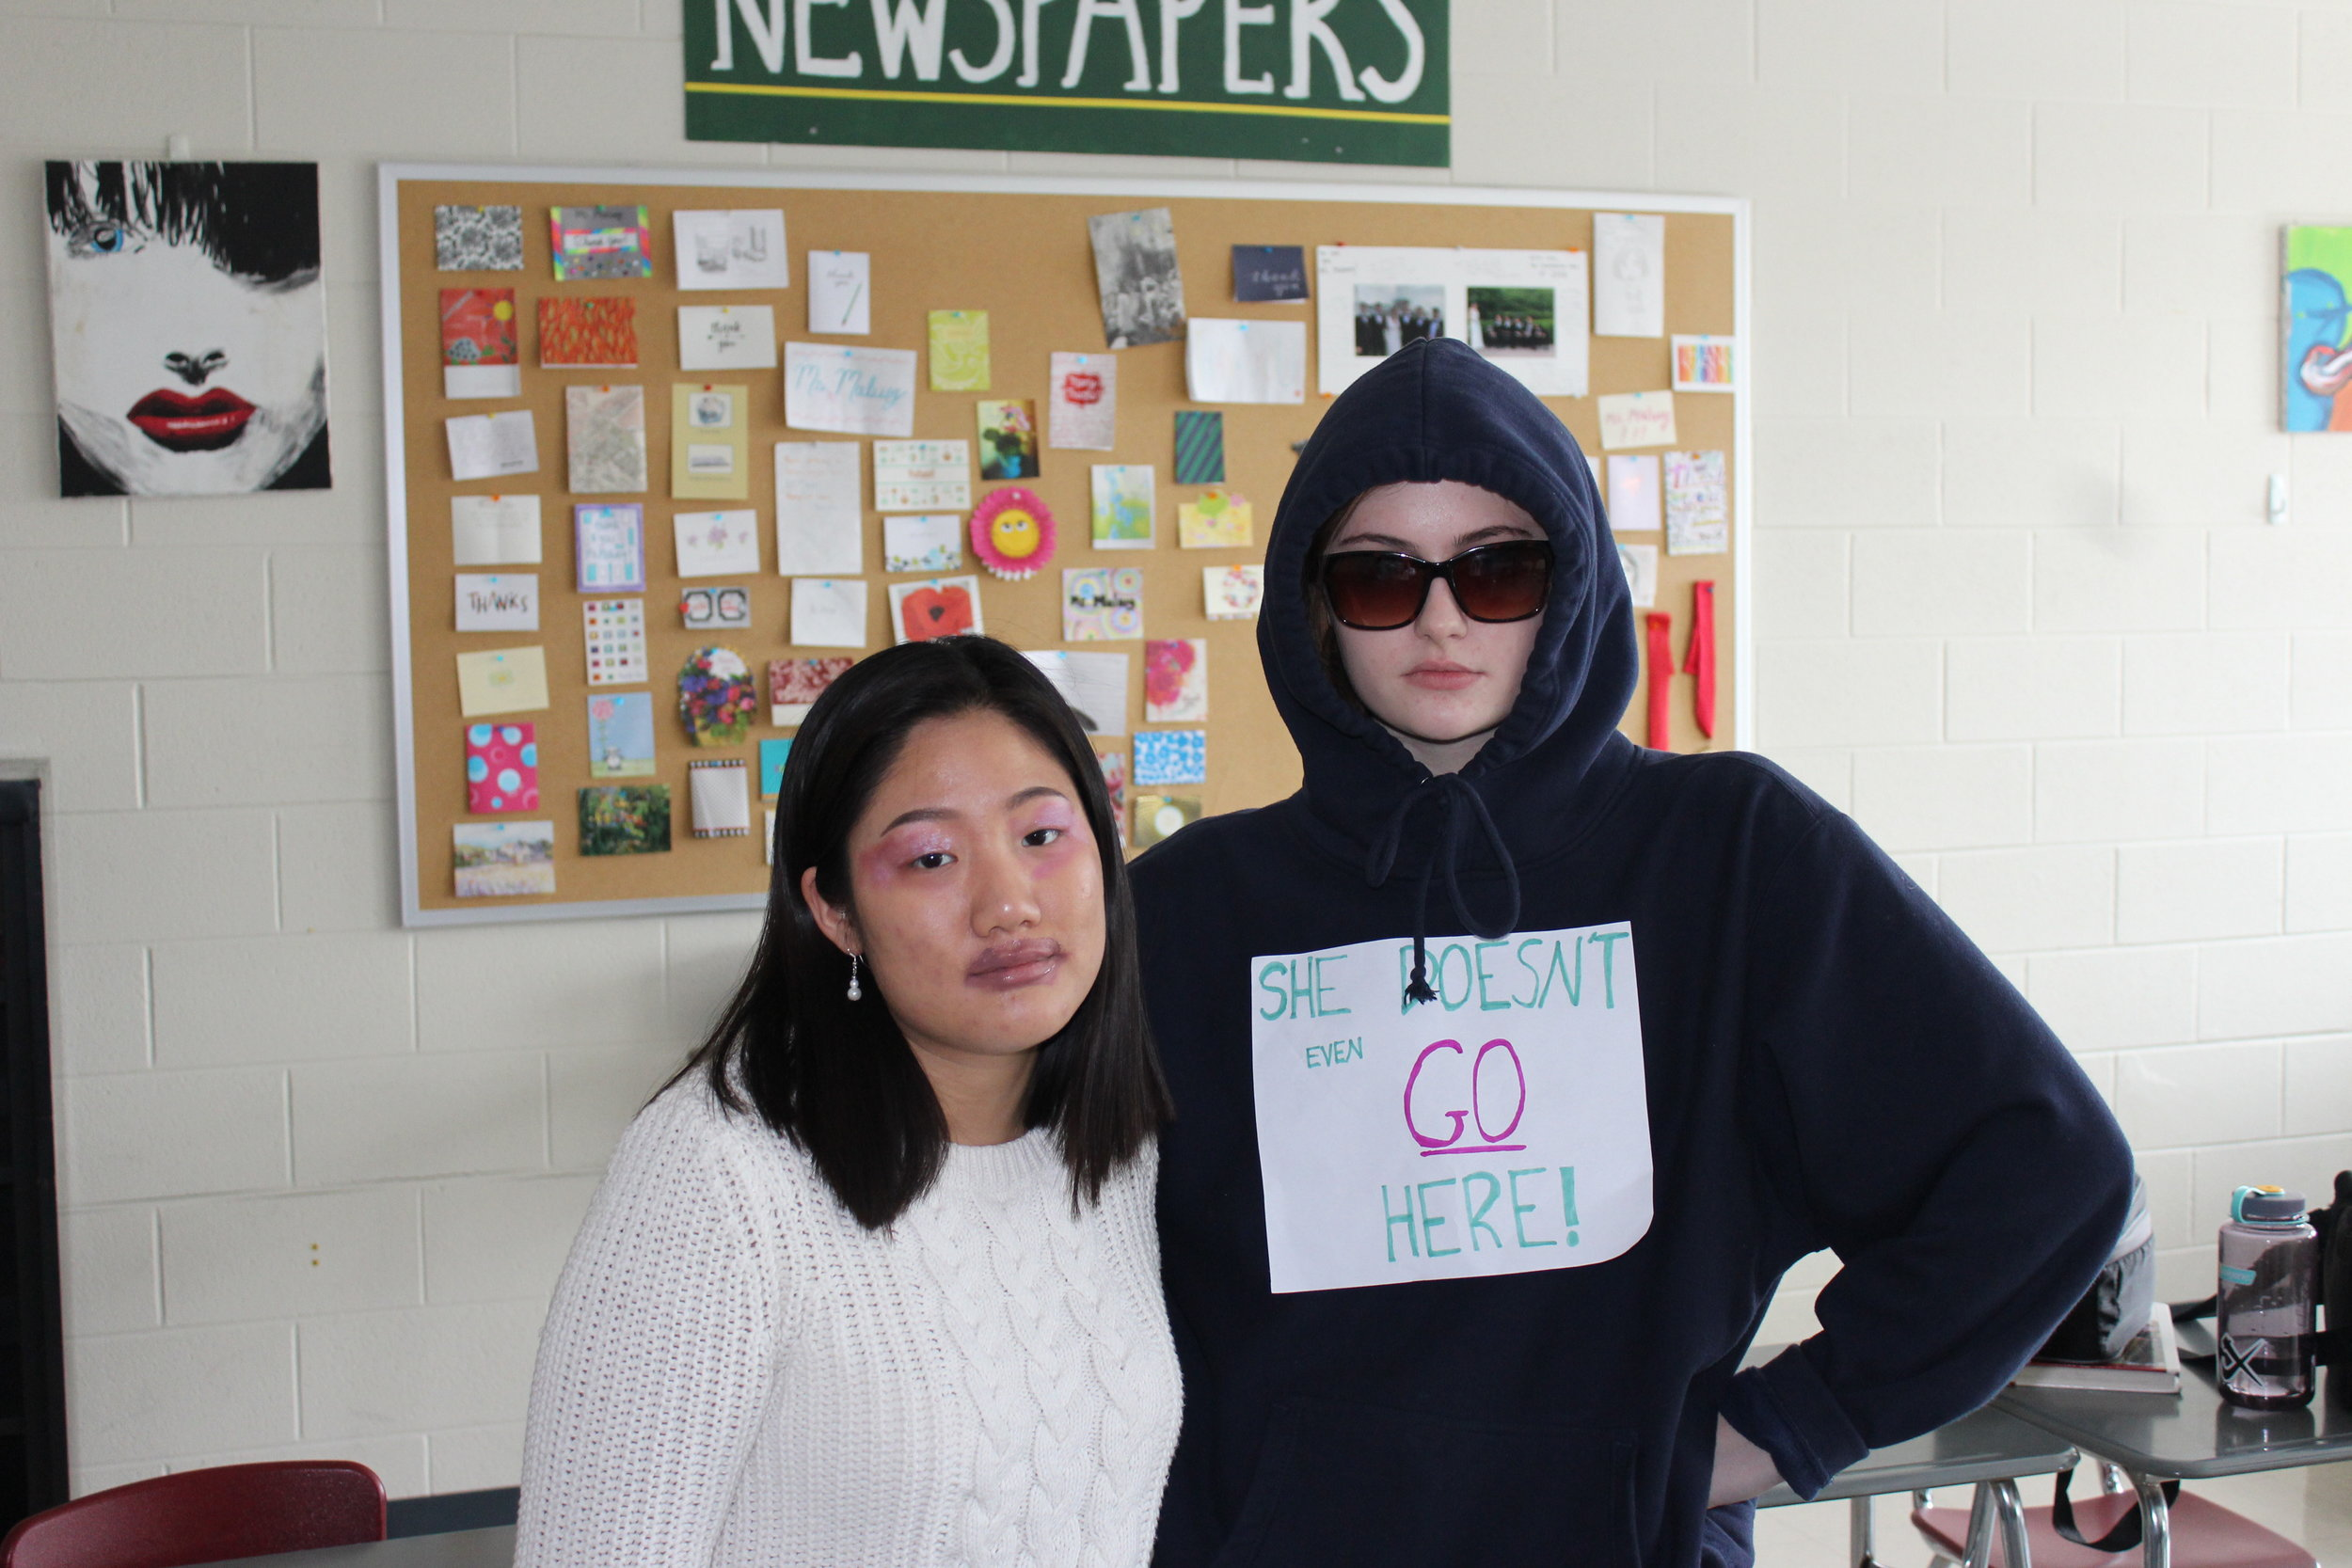 """Edina Hadzic, Adv. 905, and YooJin Yoon, Adv. 903, as the """"Mean Girls"""" and """"face on your makeup meme"""""""